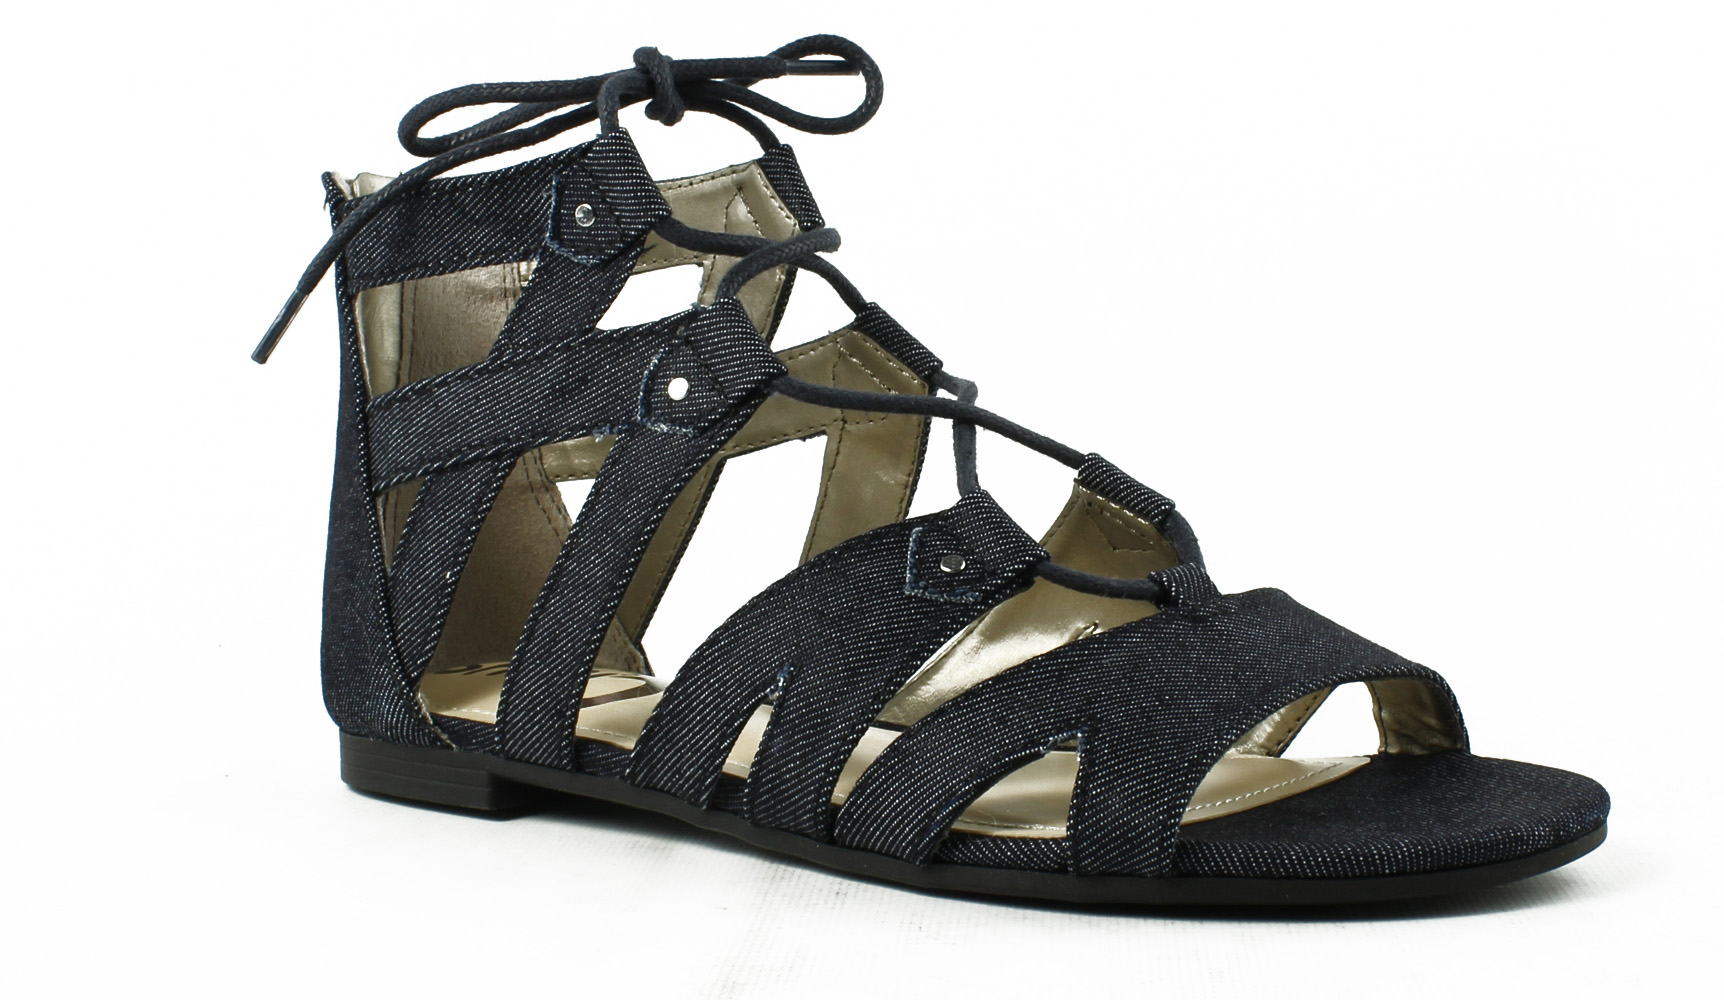 16612fb2a Image is loading Circus-by-Sam-Edelman-Womens-E8211f3-DarkNavy-Gladiator-